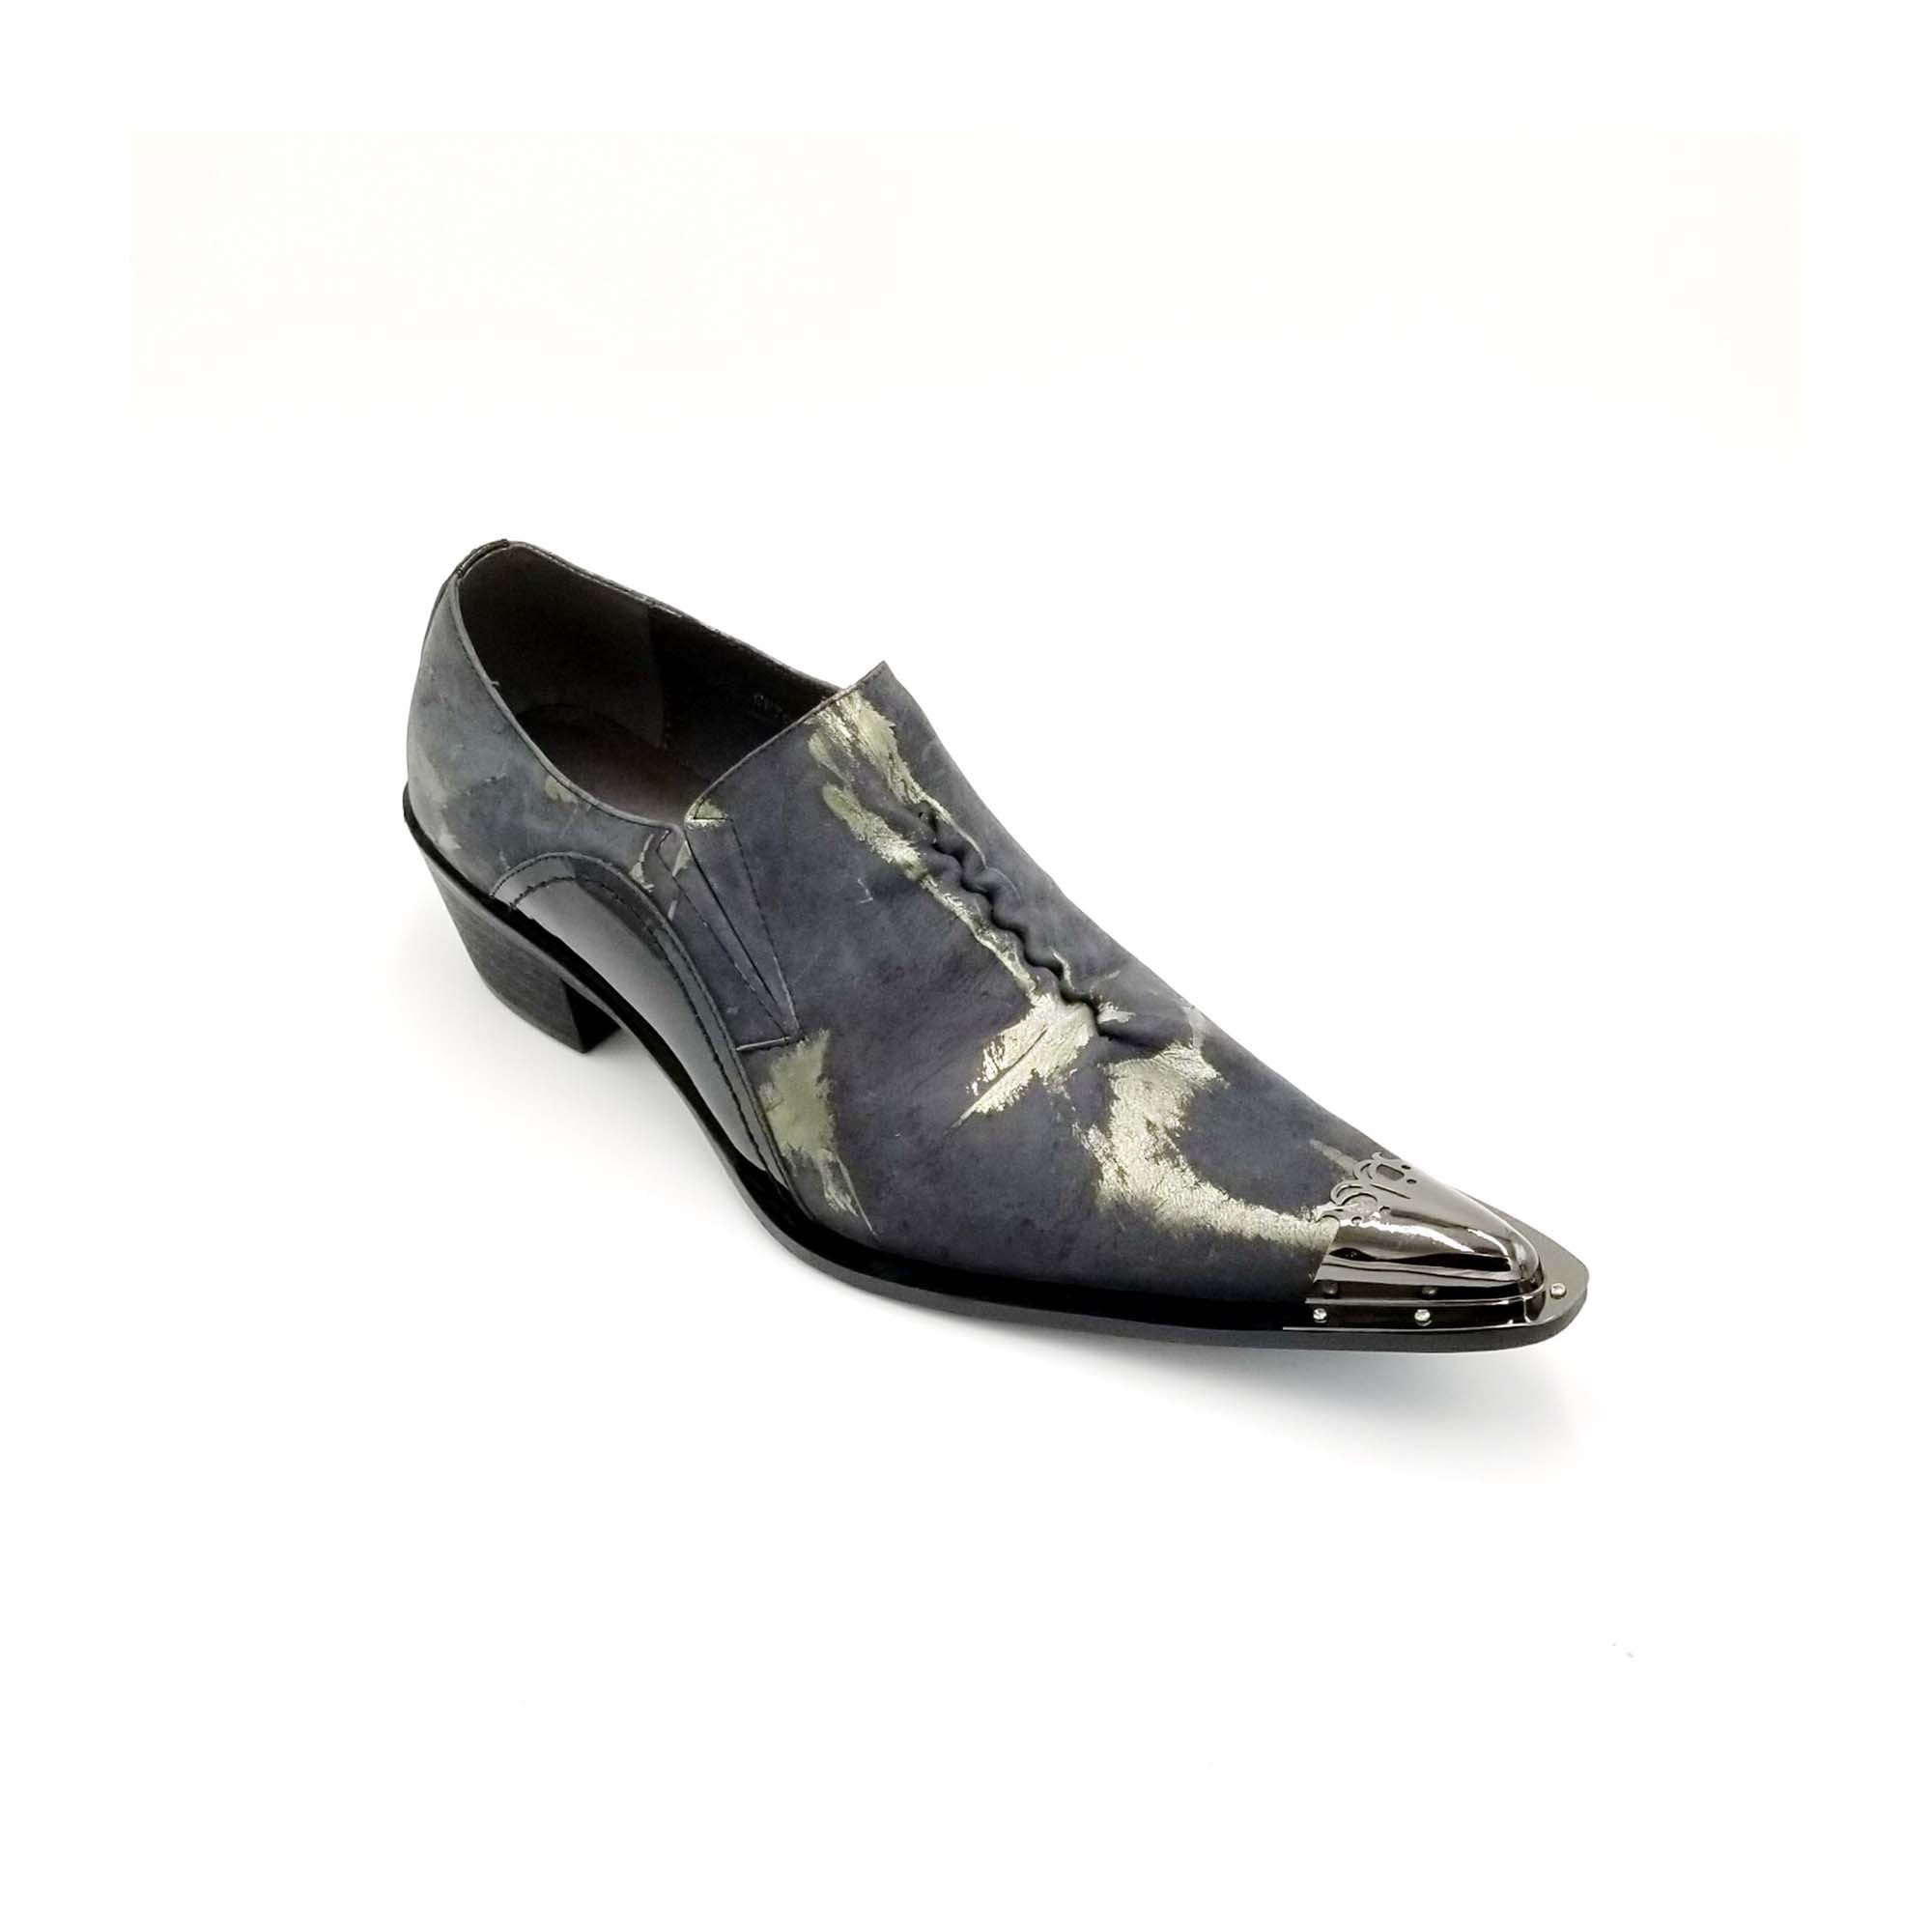 Zota USA Dress Shoe GF766